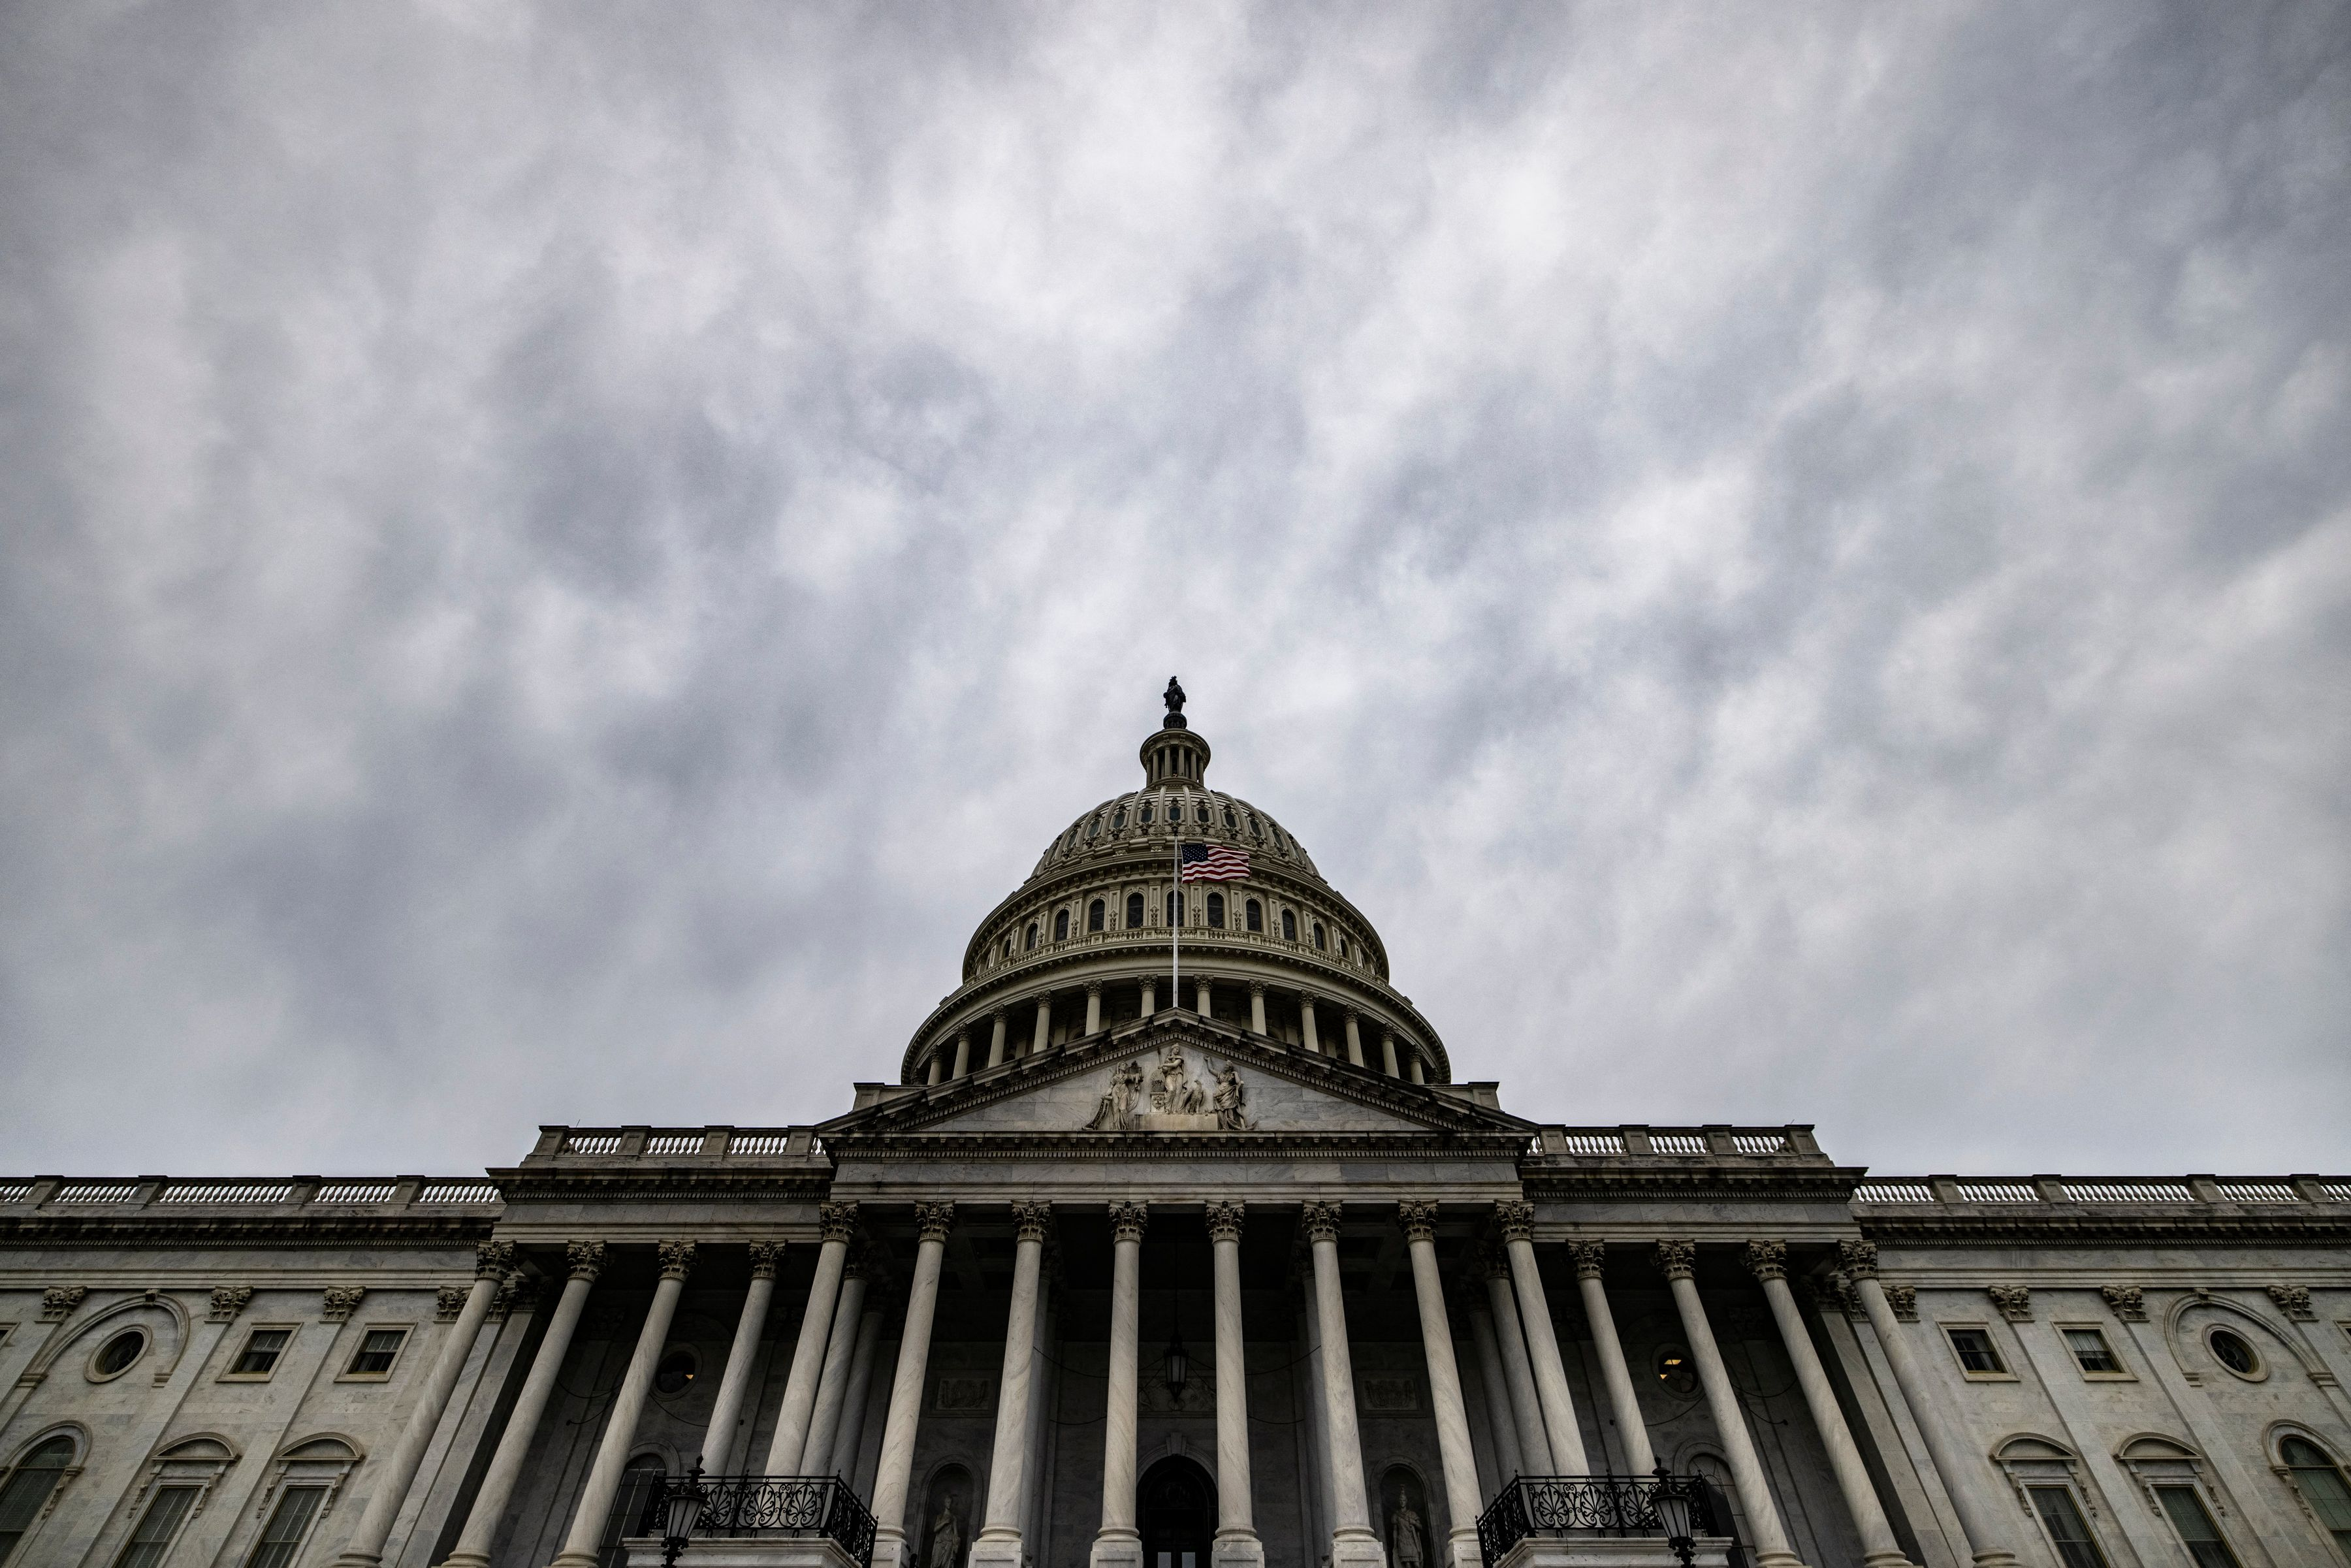 SECURE 2.0 retirement bill clears committee and moves closer to passage